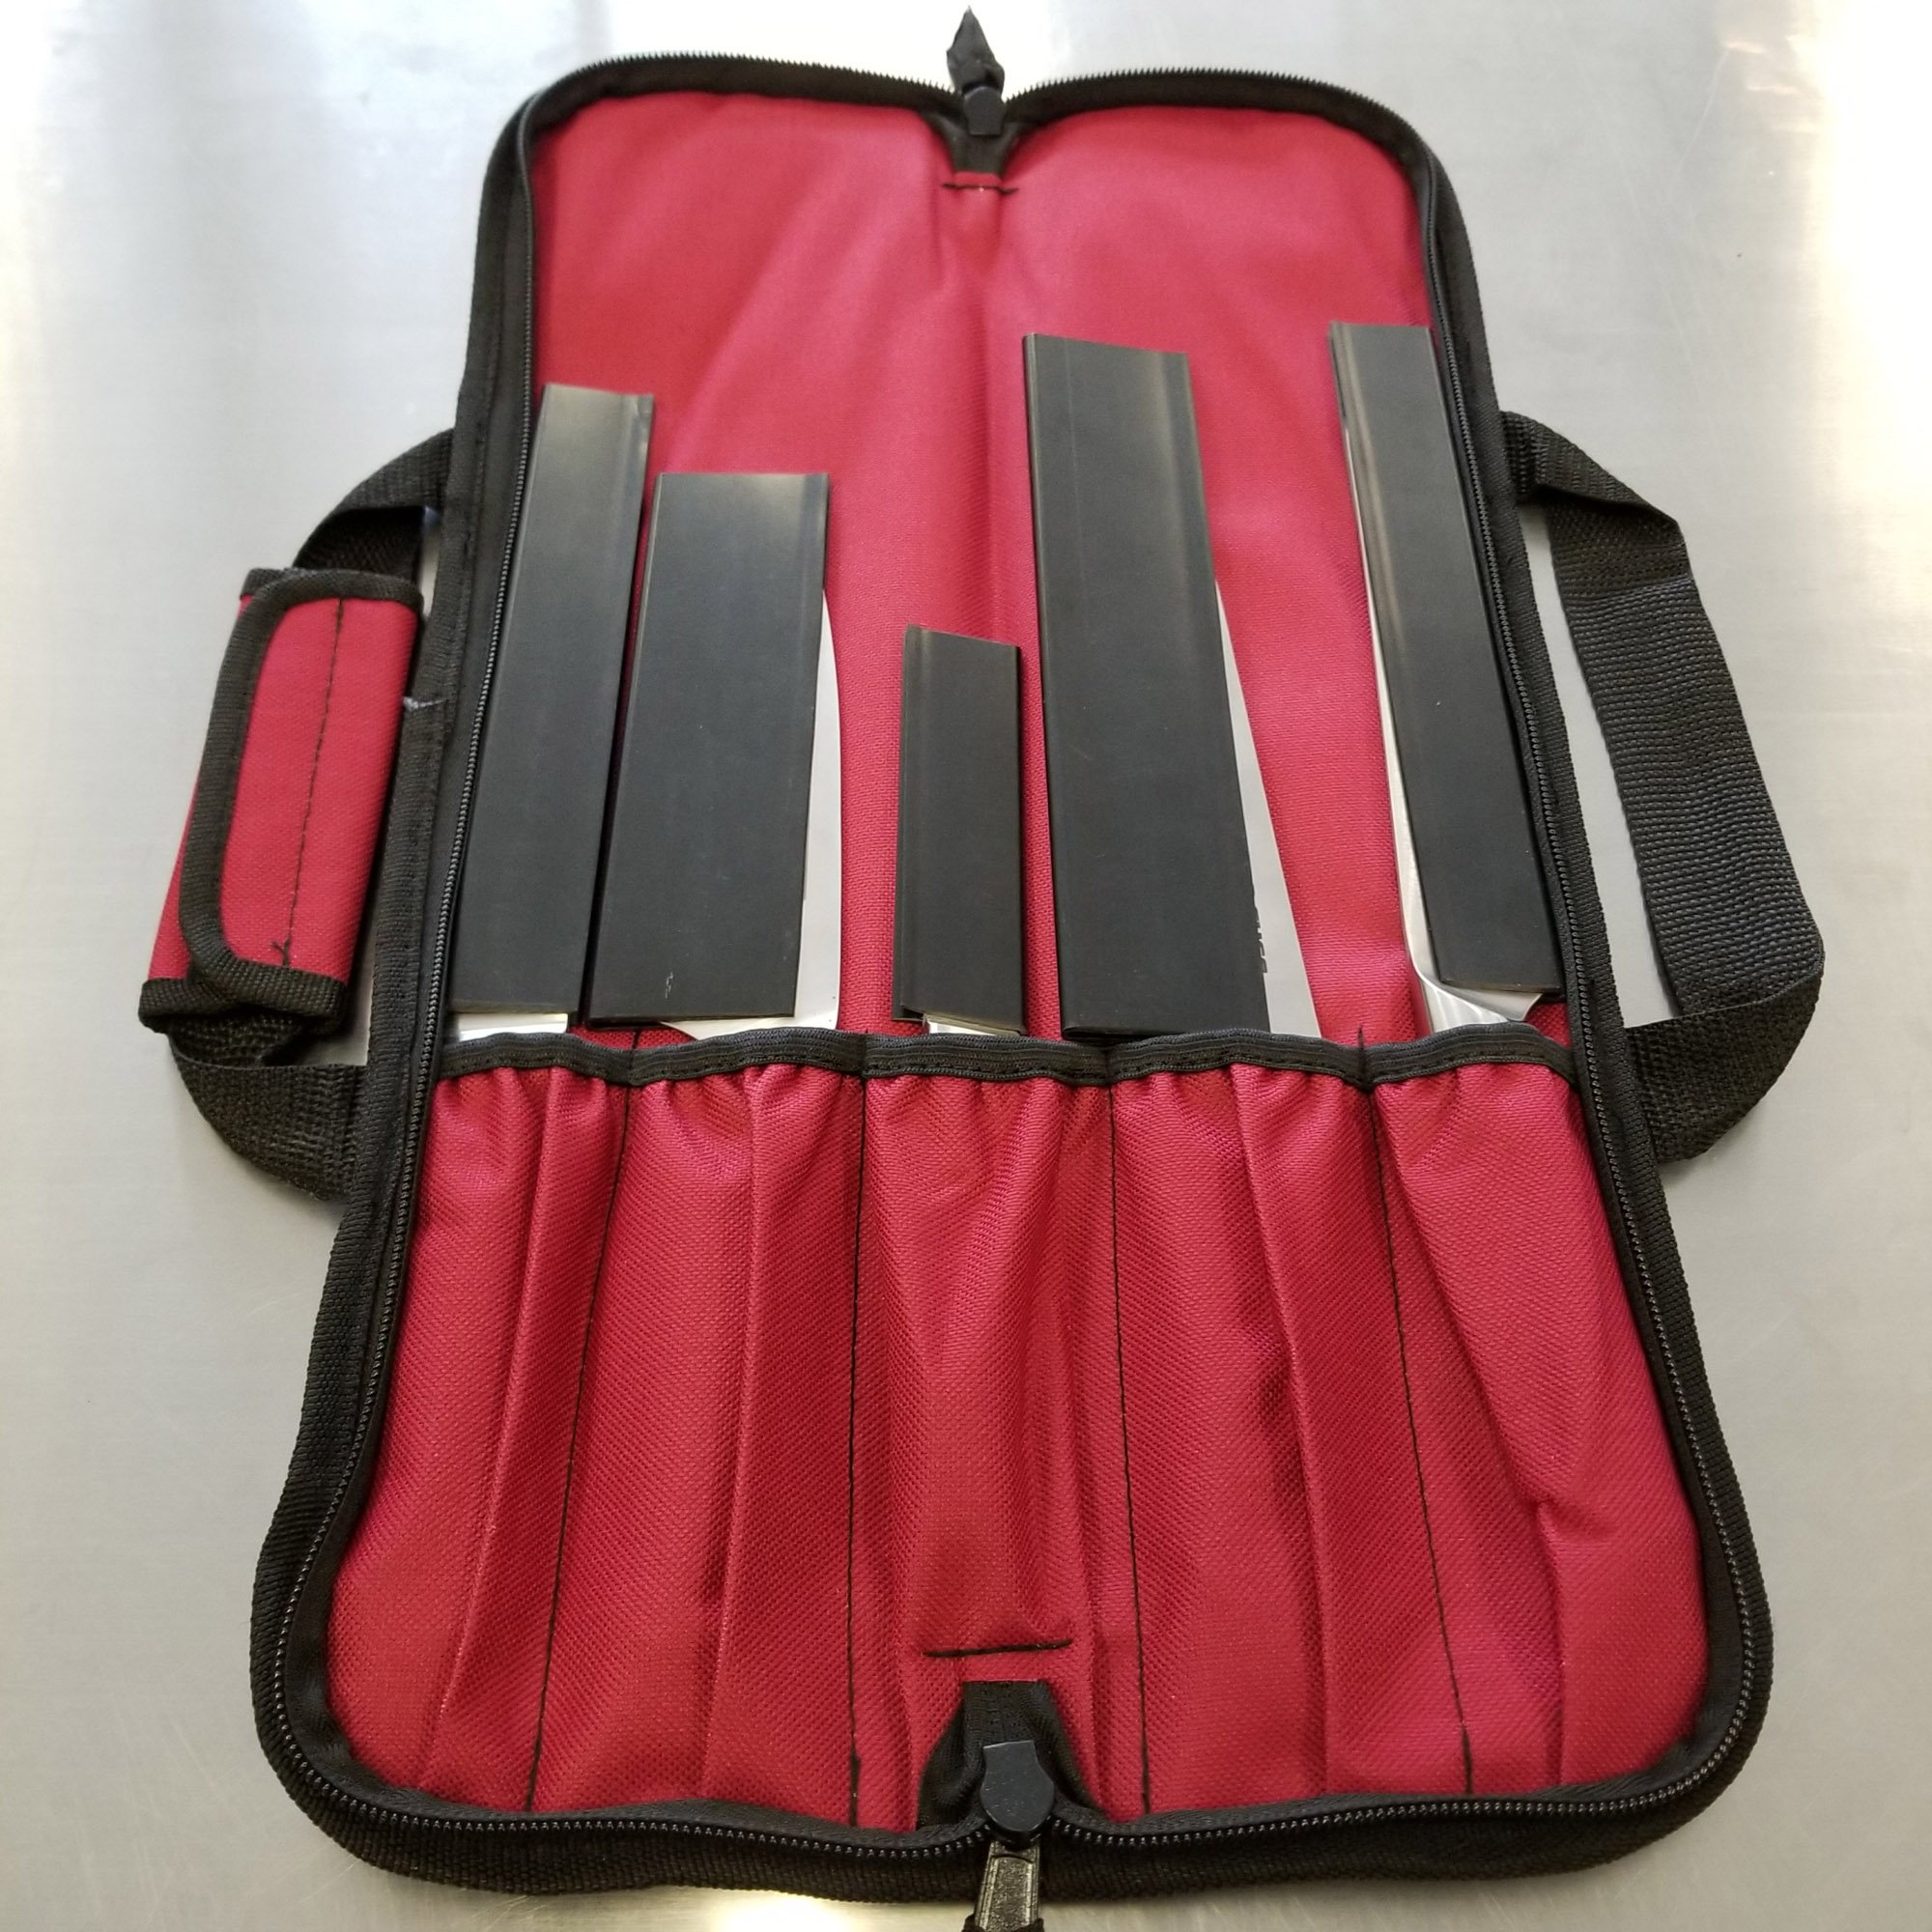 5 Pocket Padded Chef Knife Case Roll with 5 pc. Edge Guards (Red 5 Pocket bag w/5pc. Black Edge guards) by Ergo Chef (Image #5)